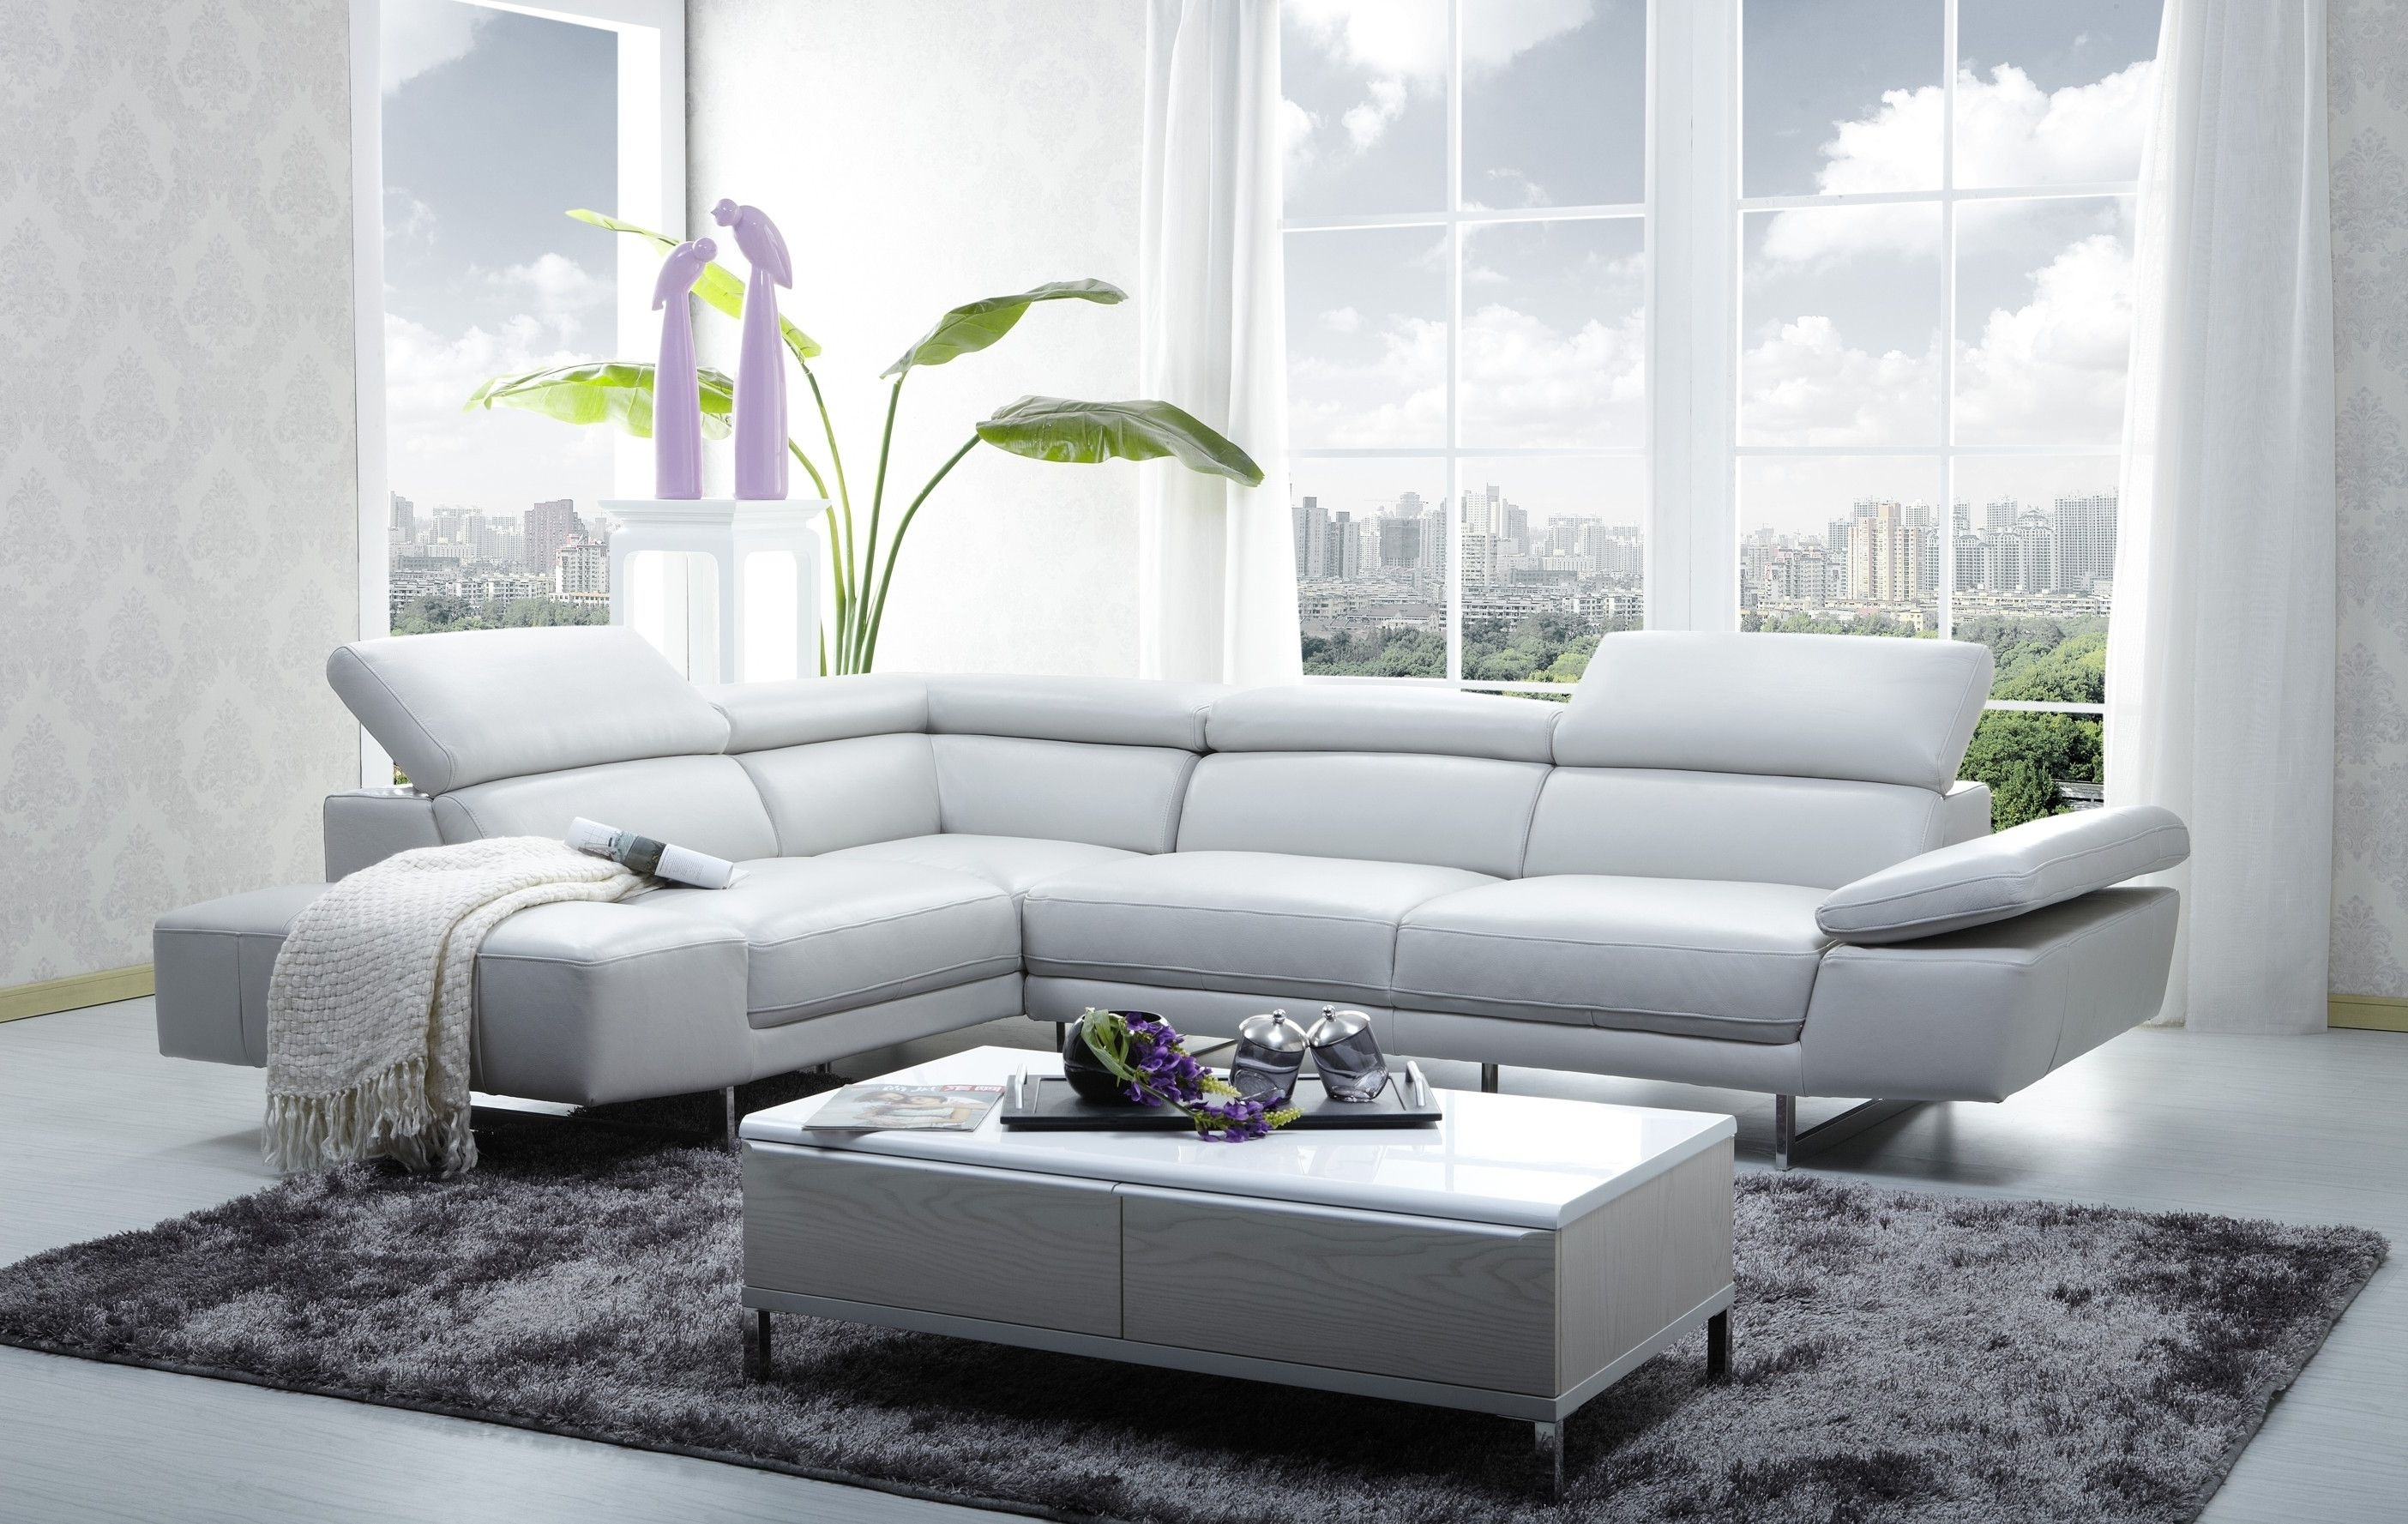 Cheap Furniture Calgary 10 Collection Of Sectional Sofas At Calgary Sofa Ideas